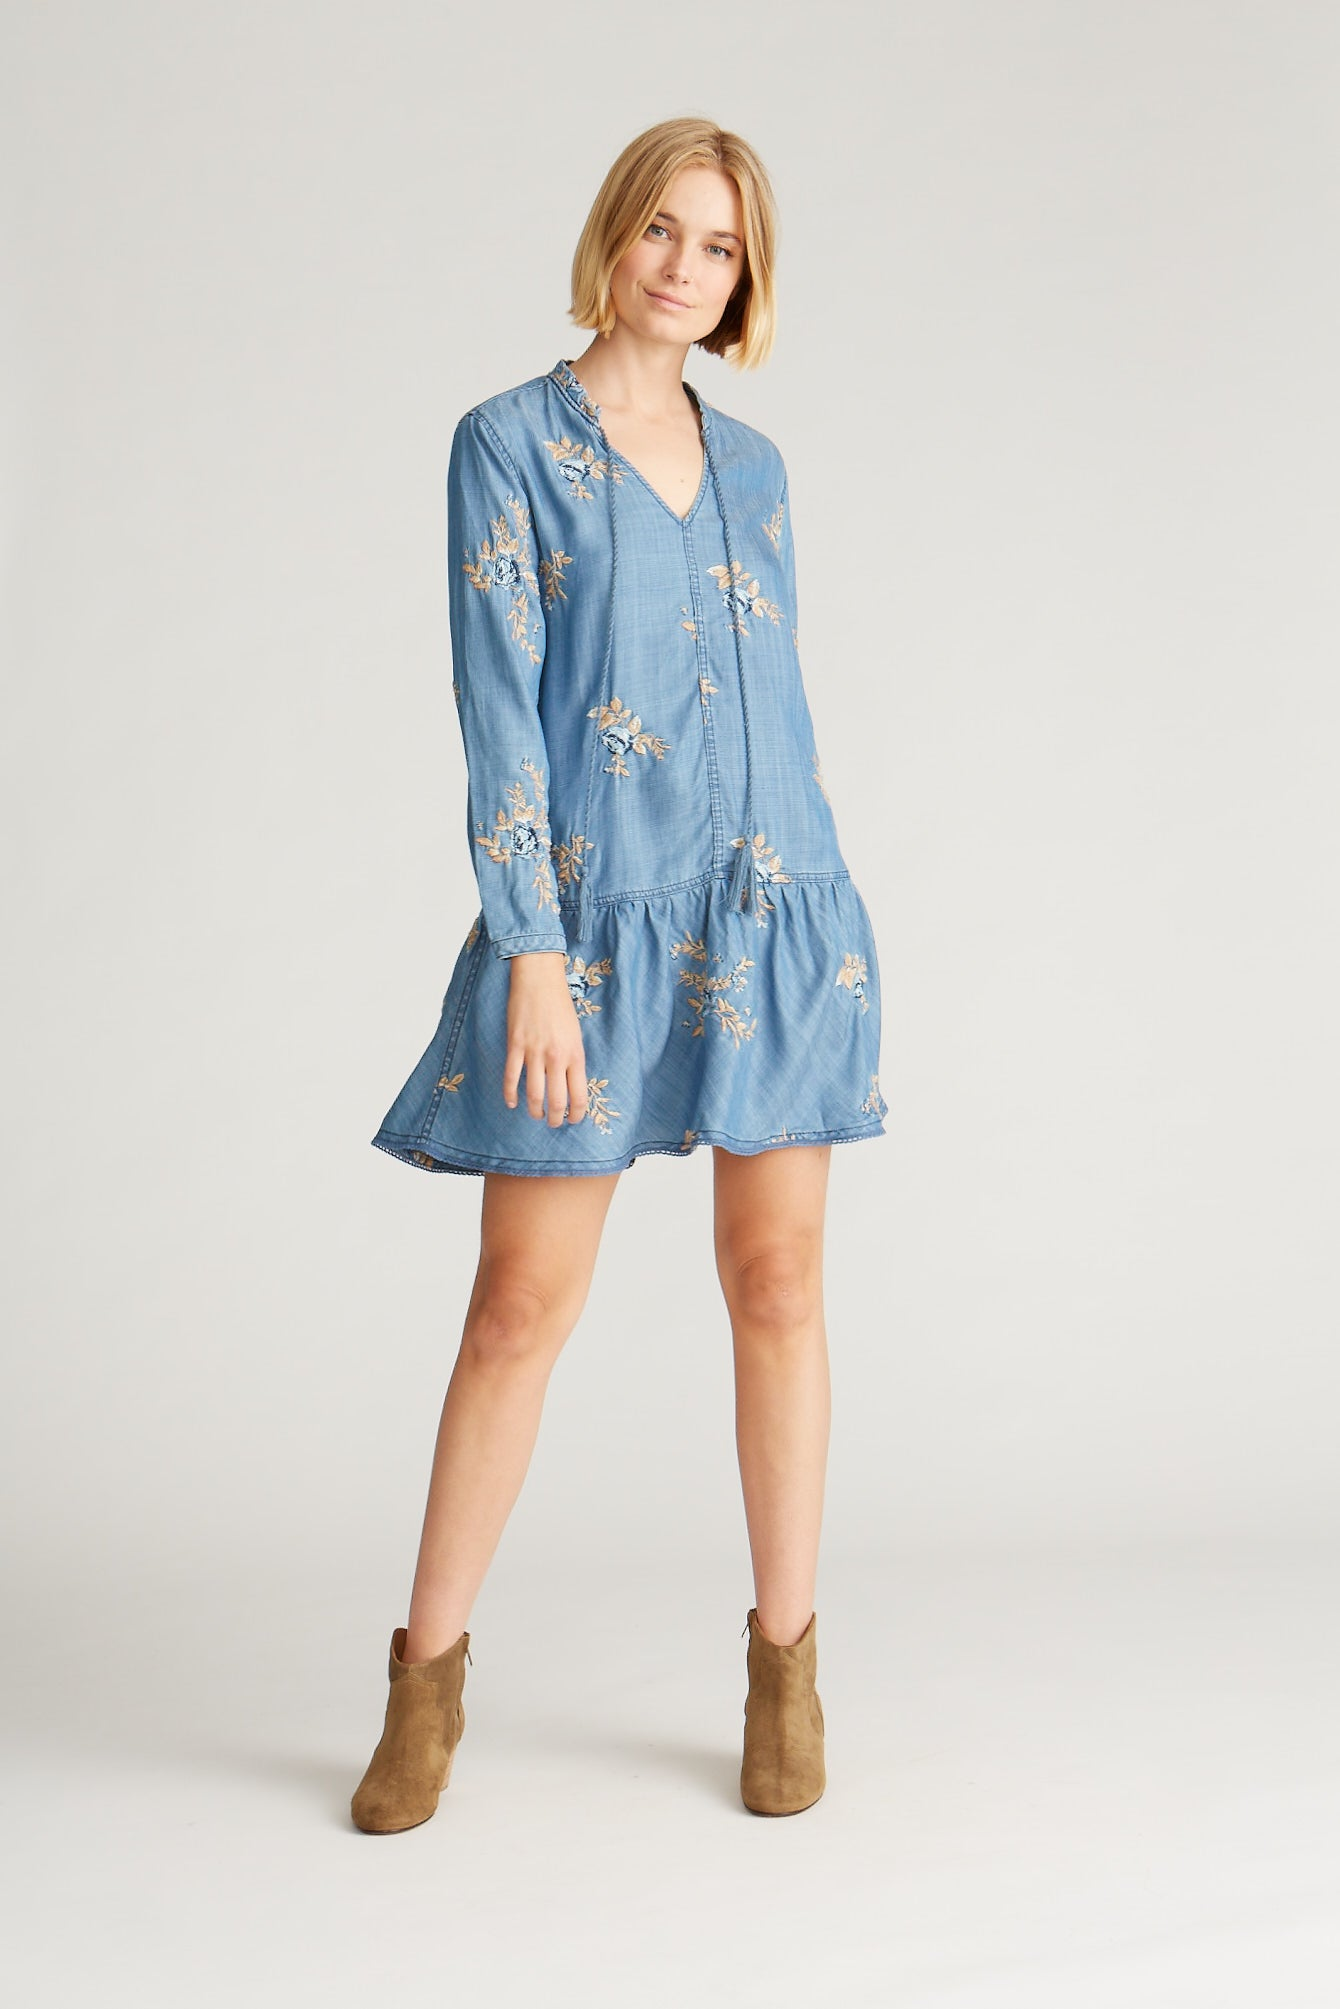 Shaye Dress - Blue Ditzy Garden